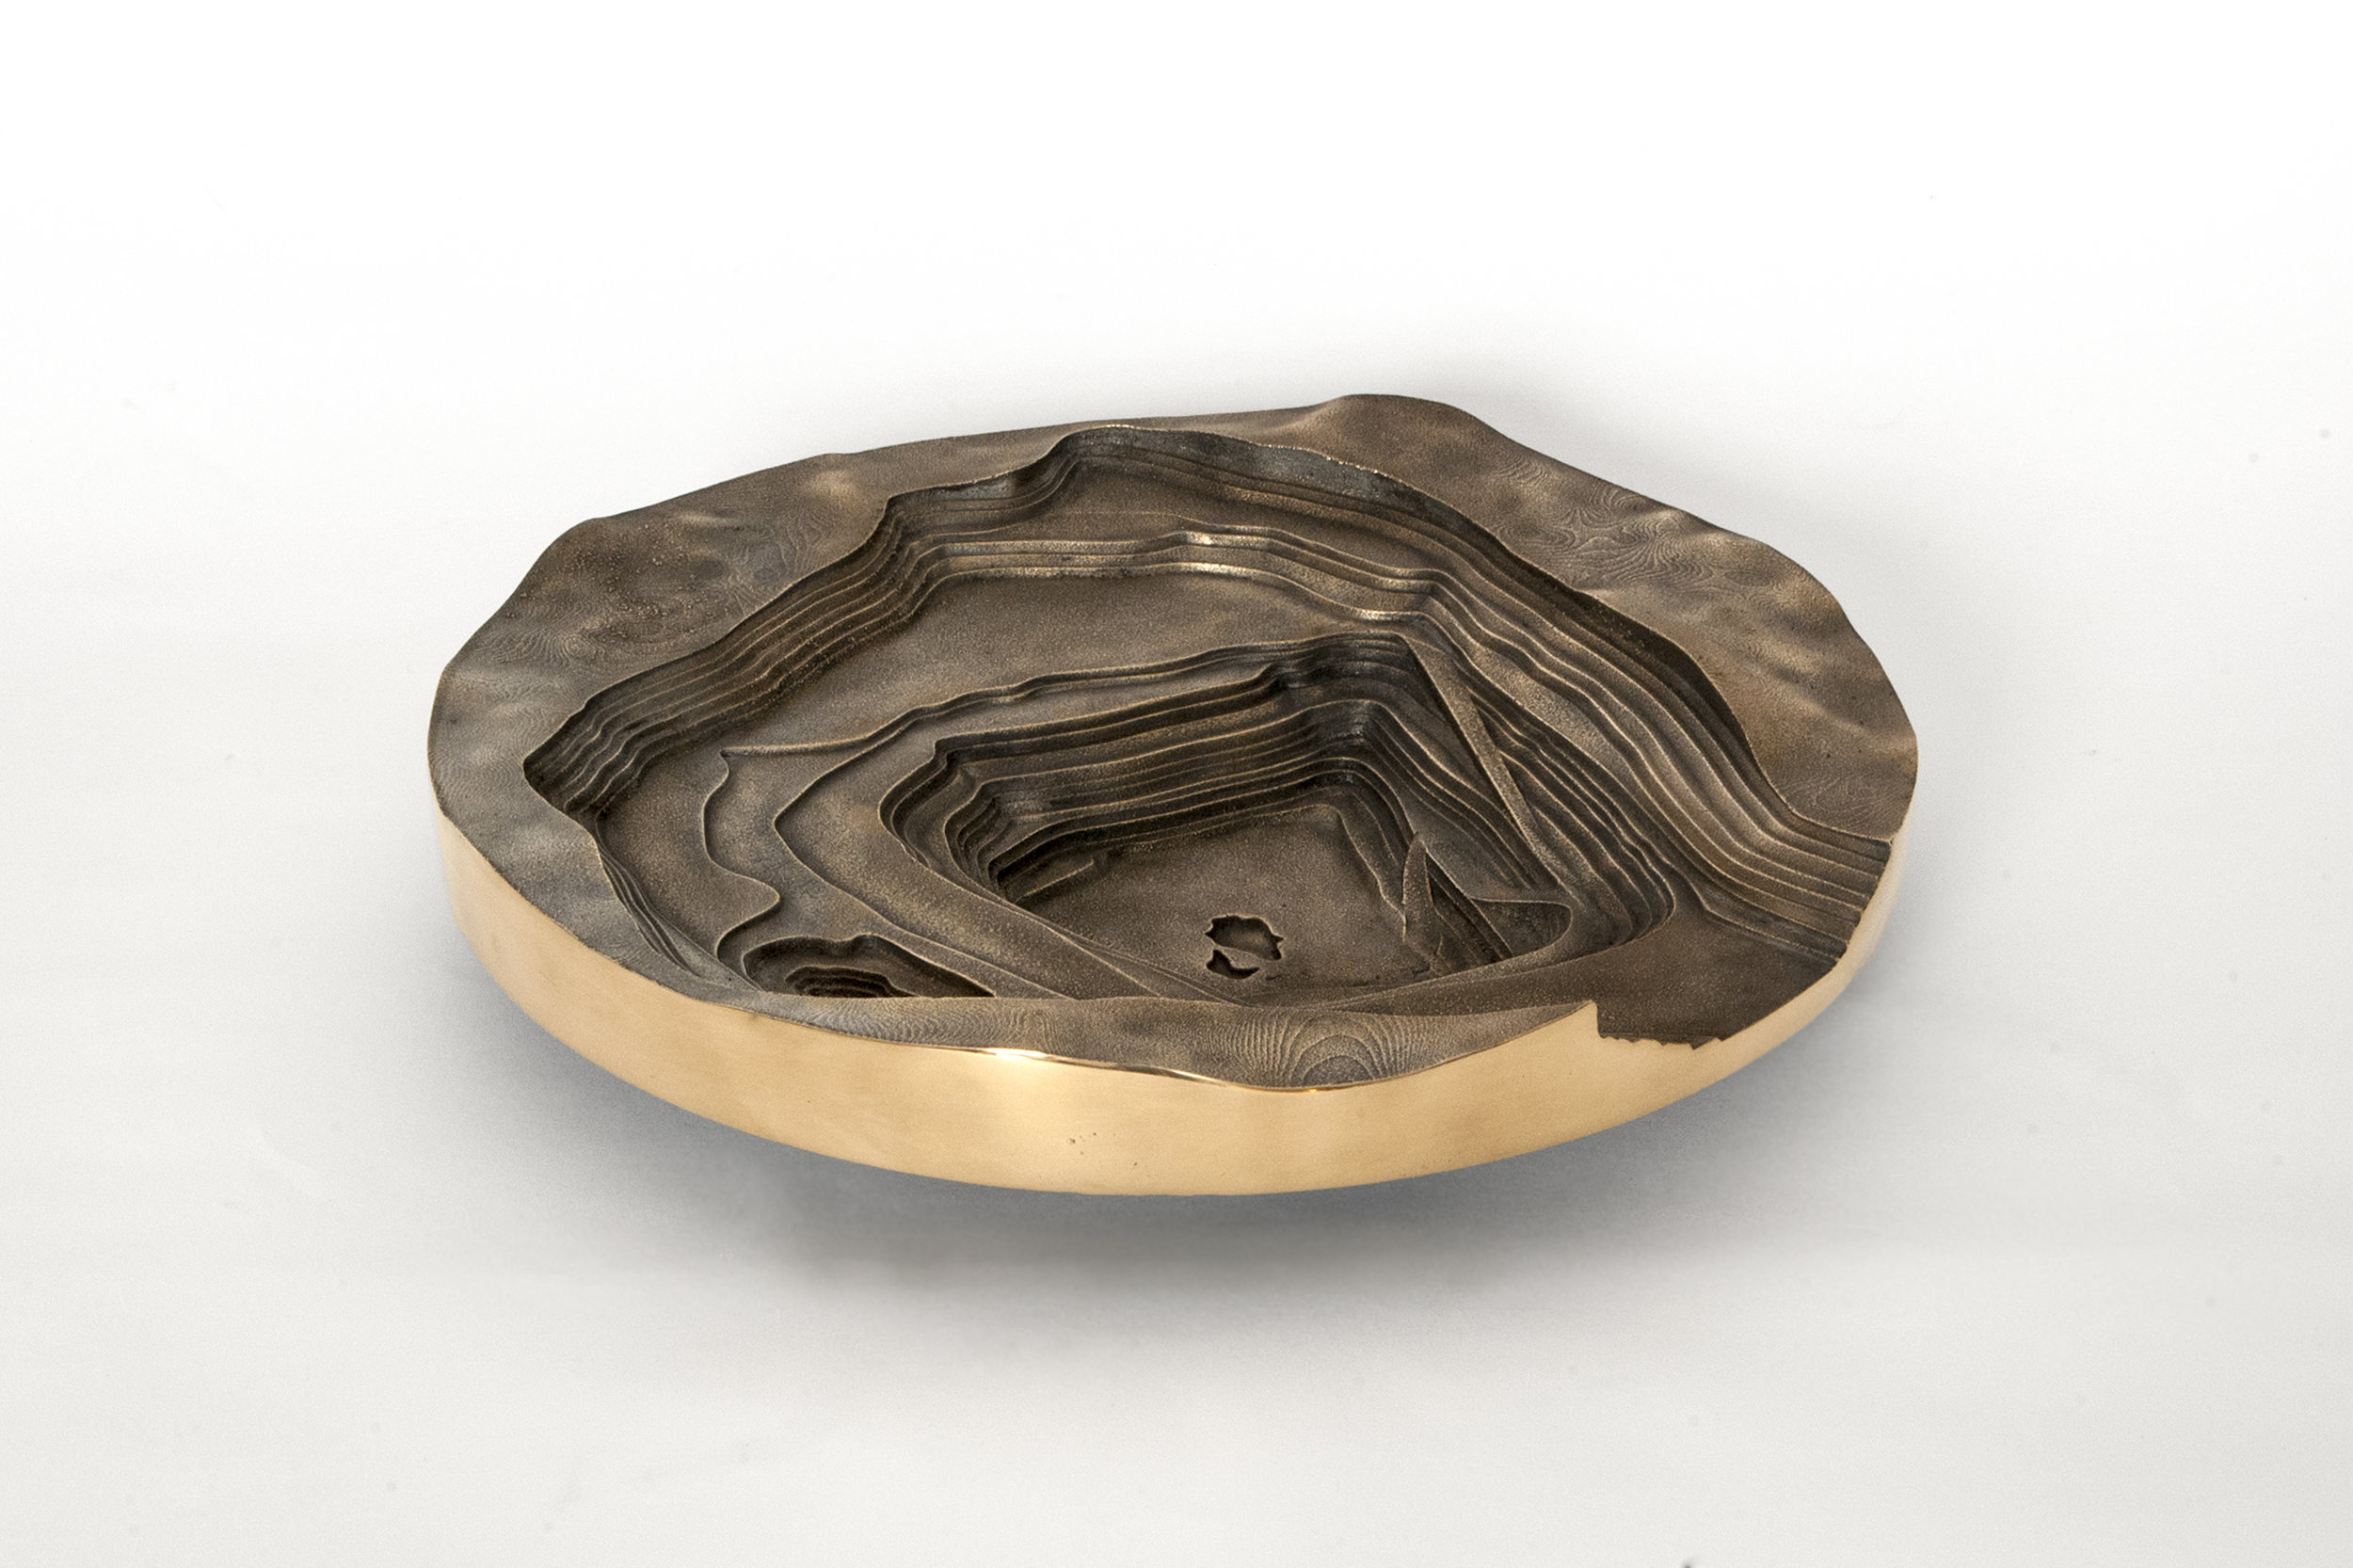 Copper Mining bowl - David Derksen Design.jpg